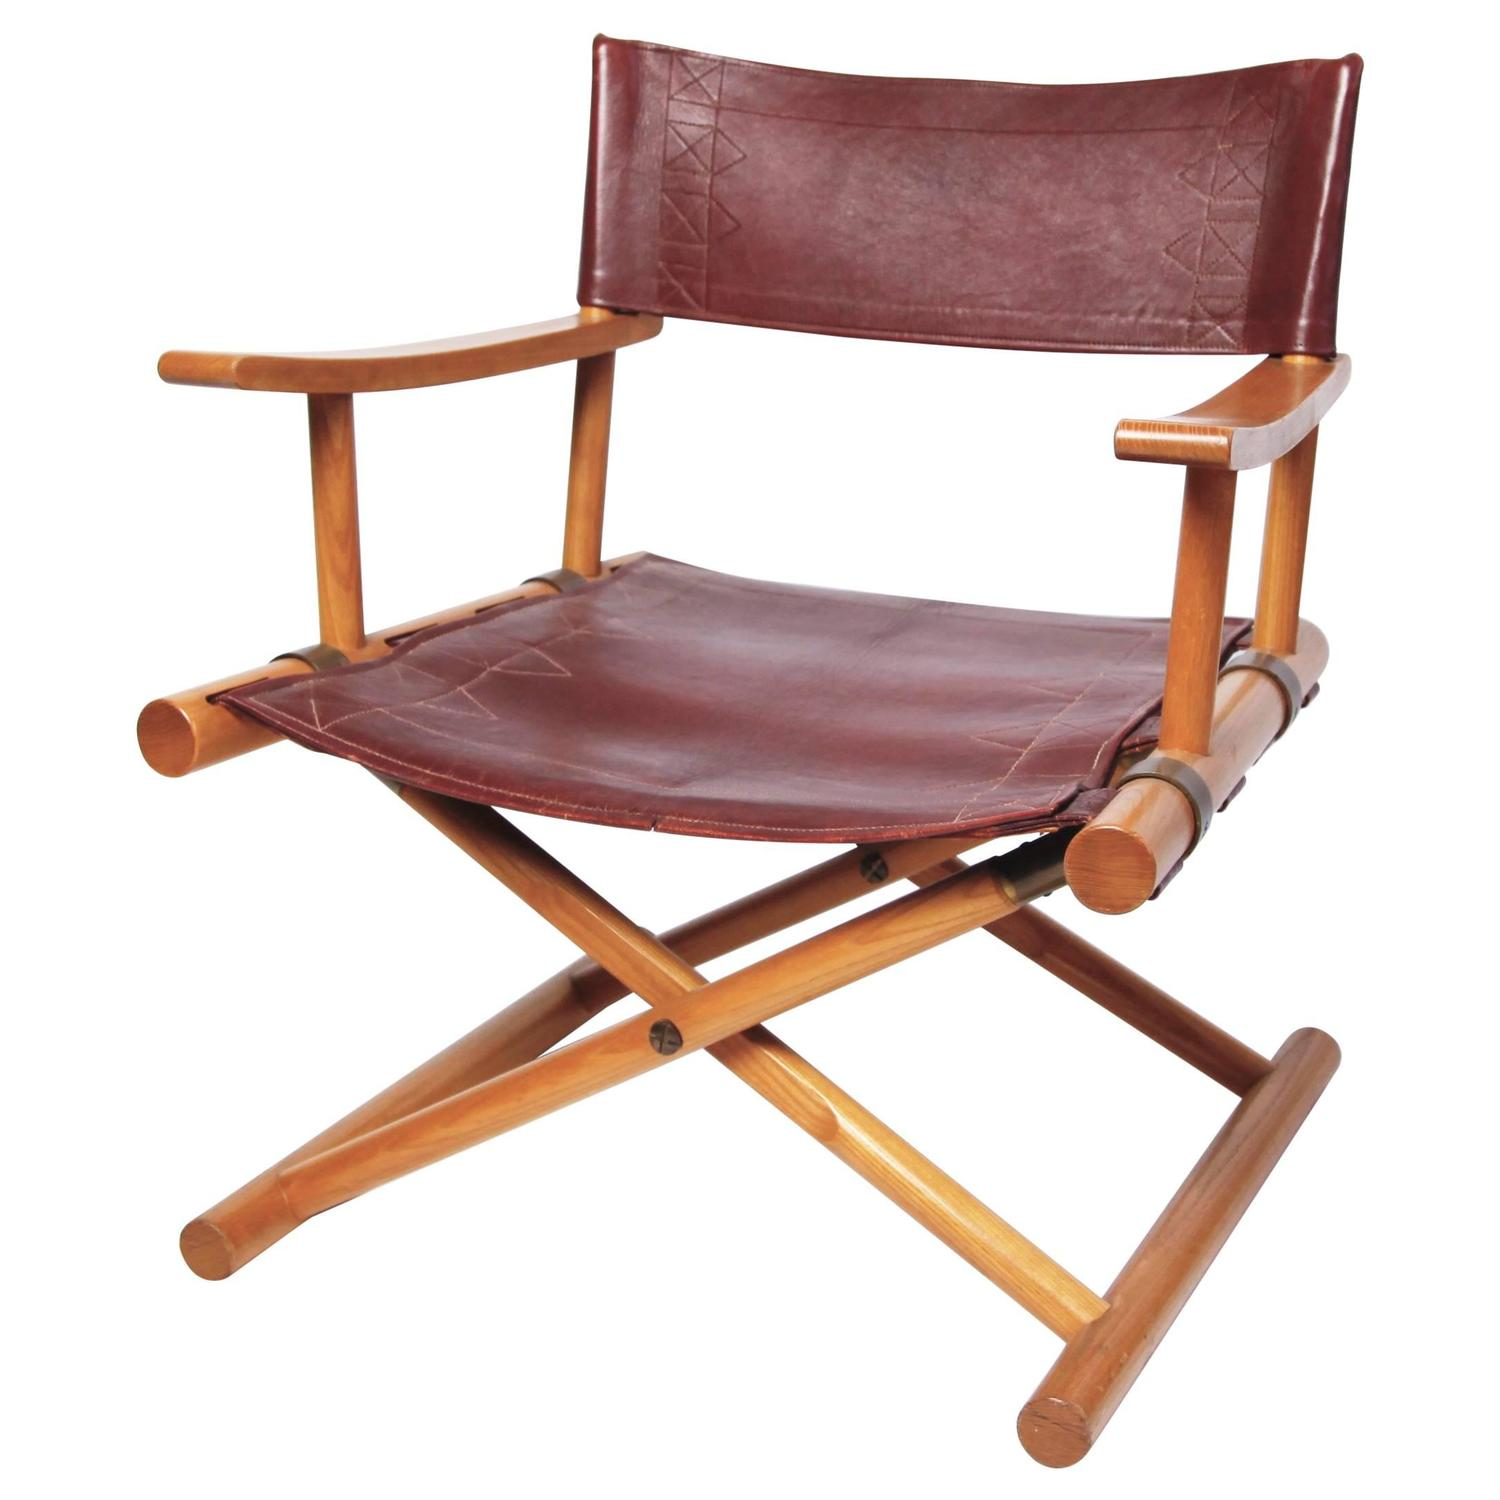 Leather Director s Chair by Sune Lindström For Sale at 1stdibs